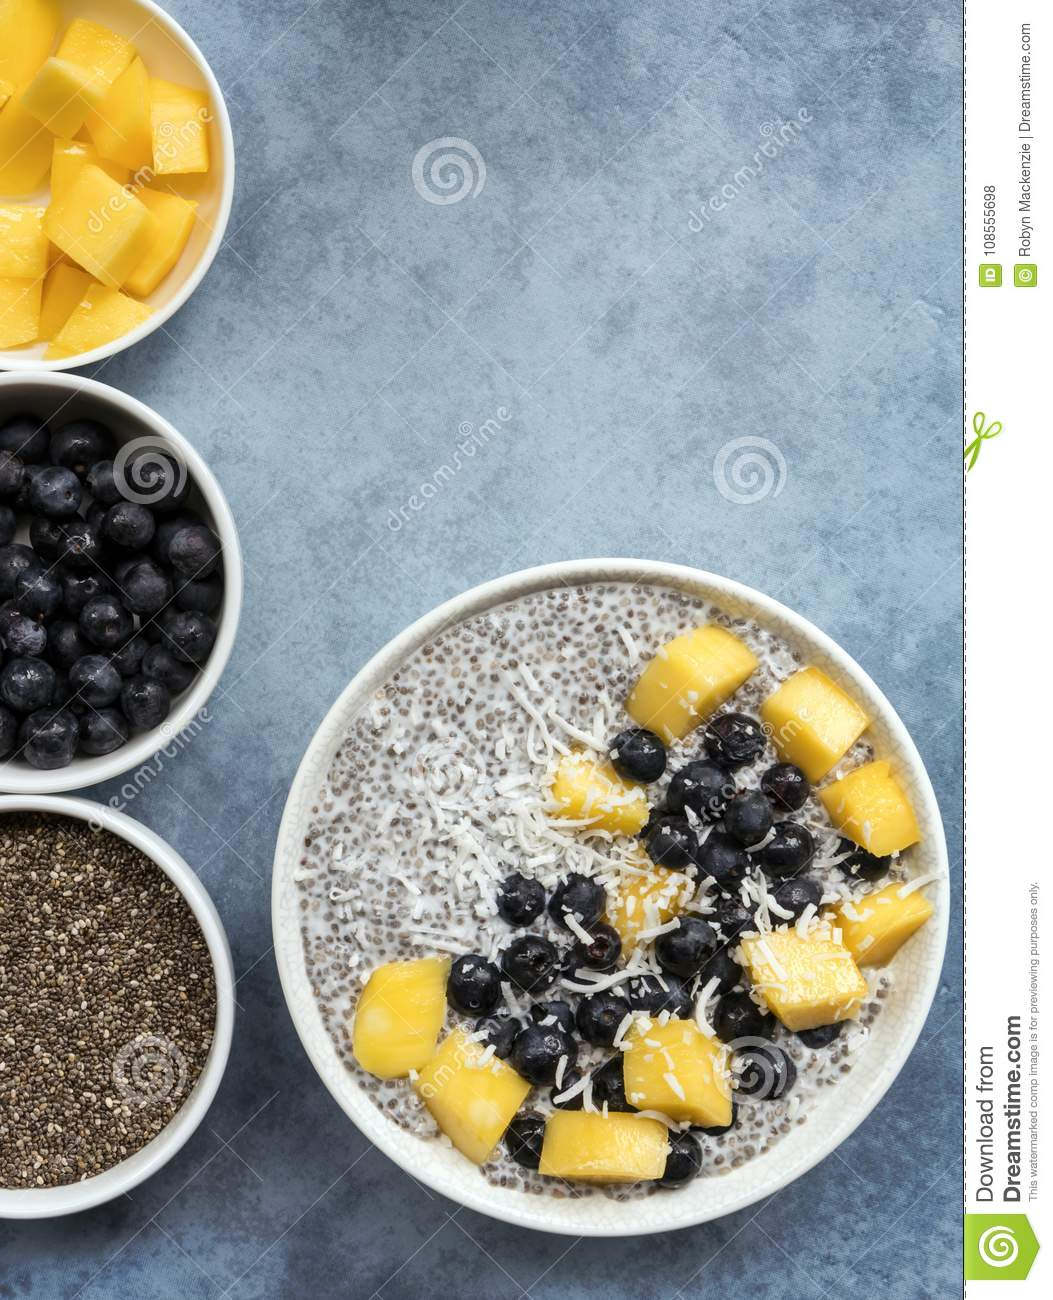 Chia Seed Pudding Top View with Blueberries Mango and Coconut